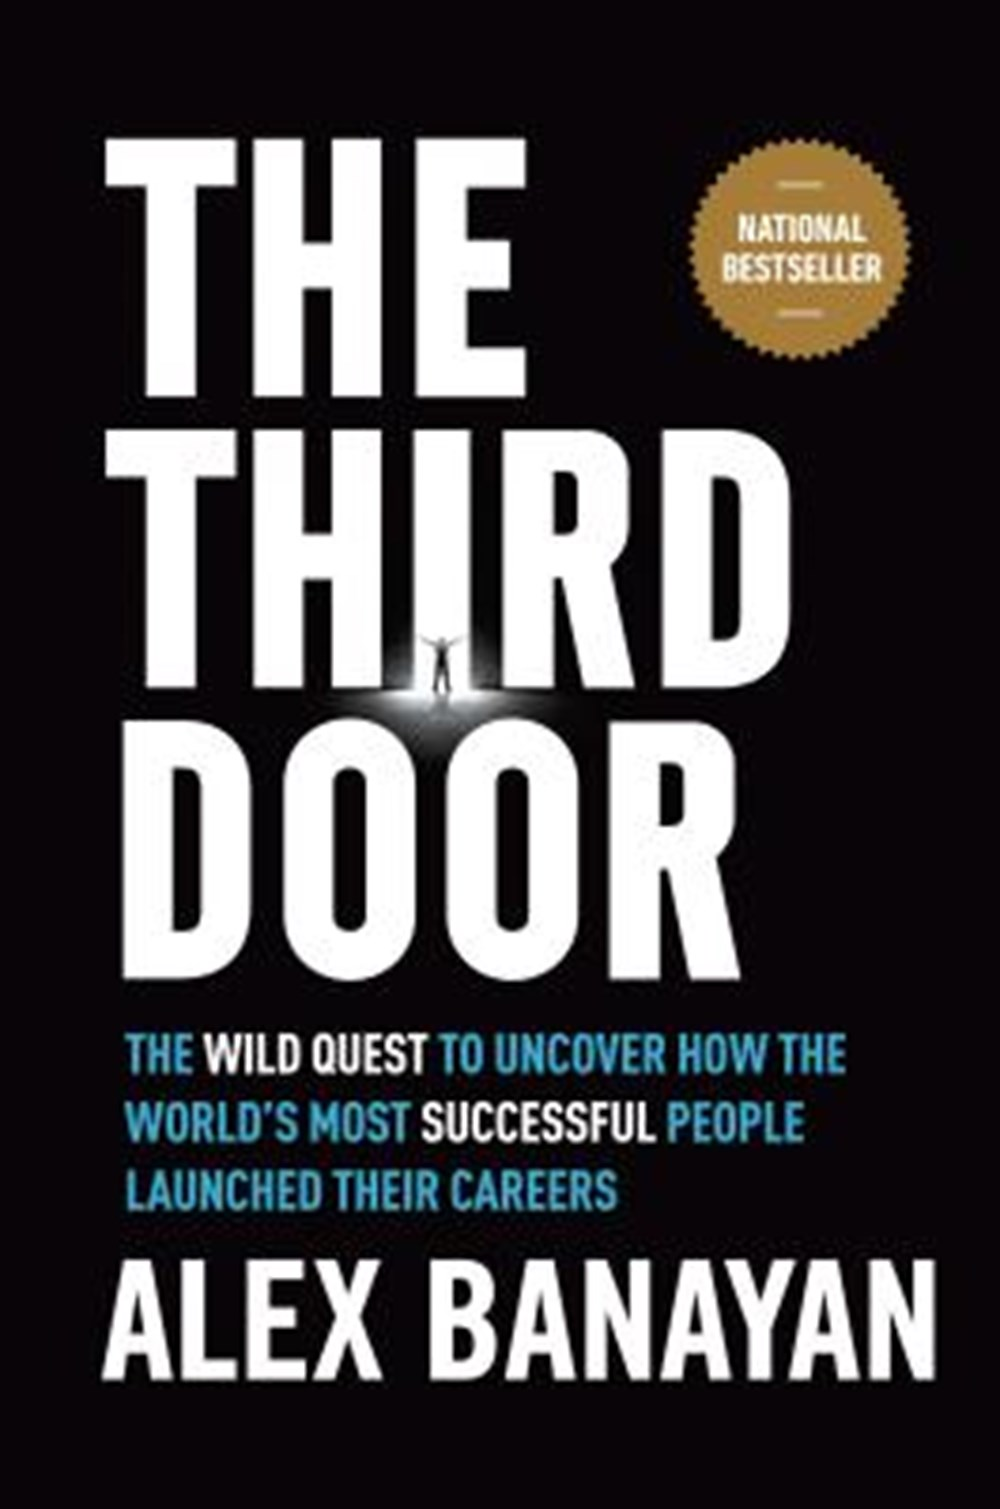 Third Door The Wild Quest to Uncover How the World's Most Successful People Launched Their Careers